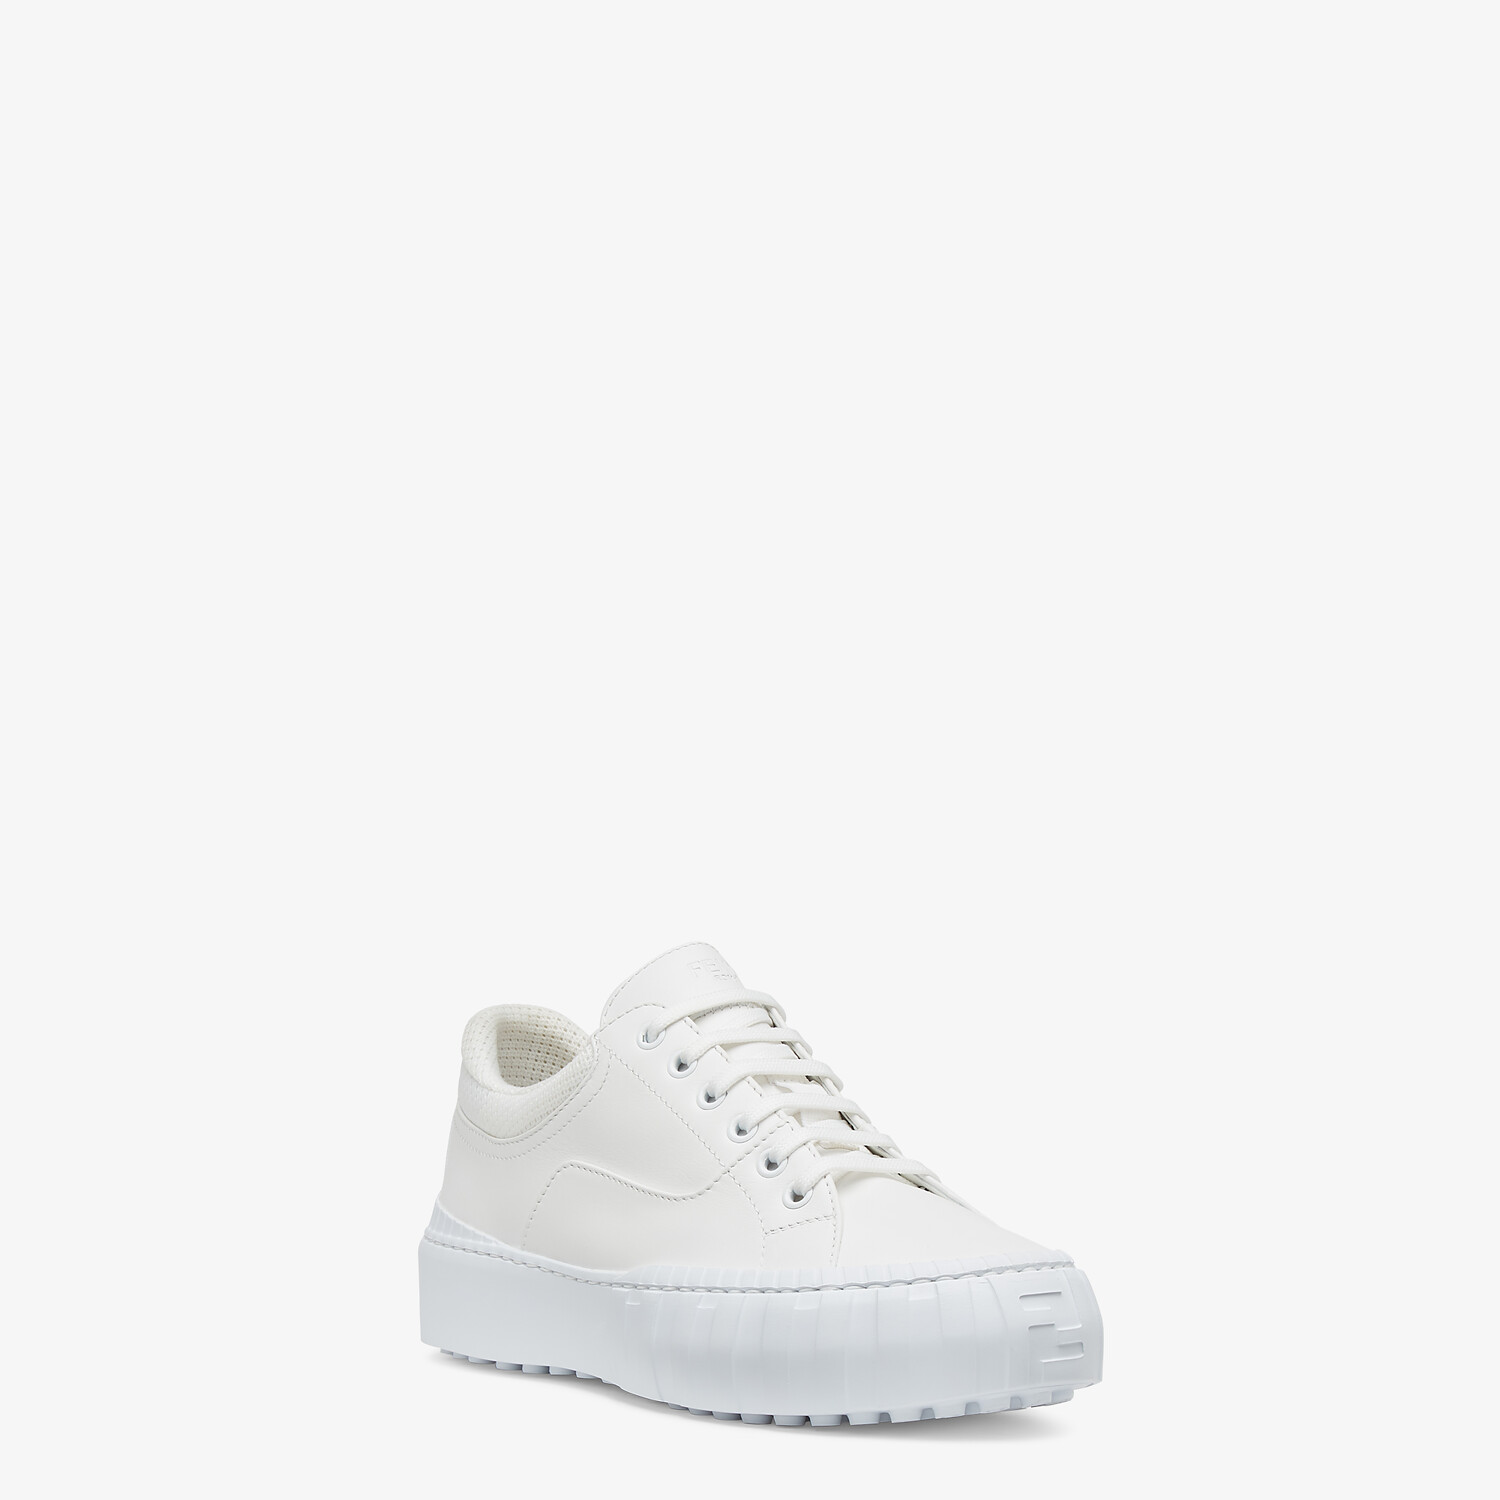 FENDI FENDI FORCE - White fabric and leather low tops - view 2 detail